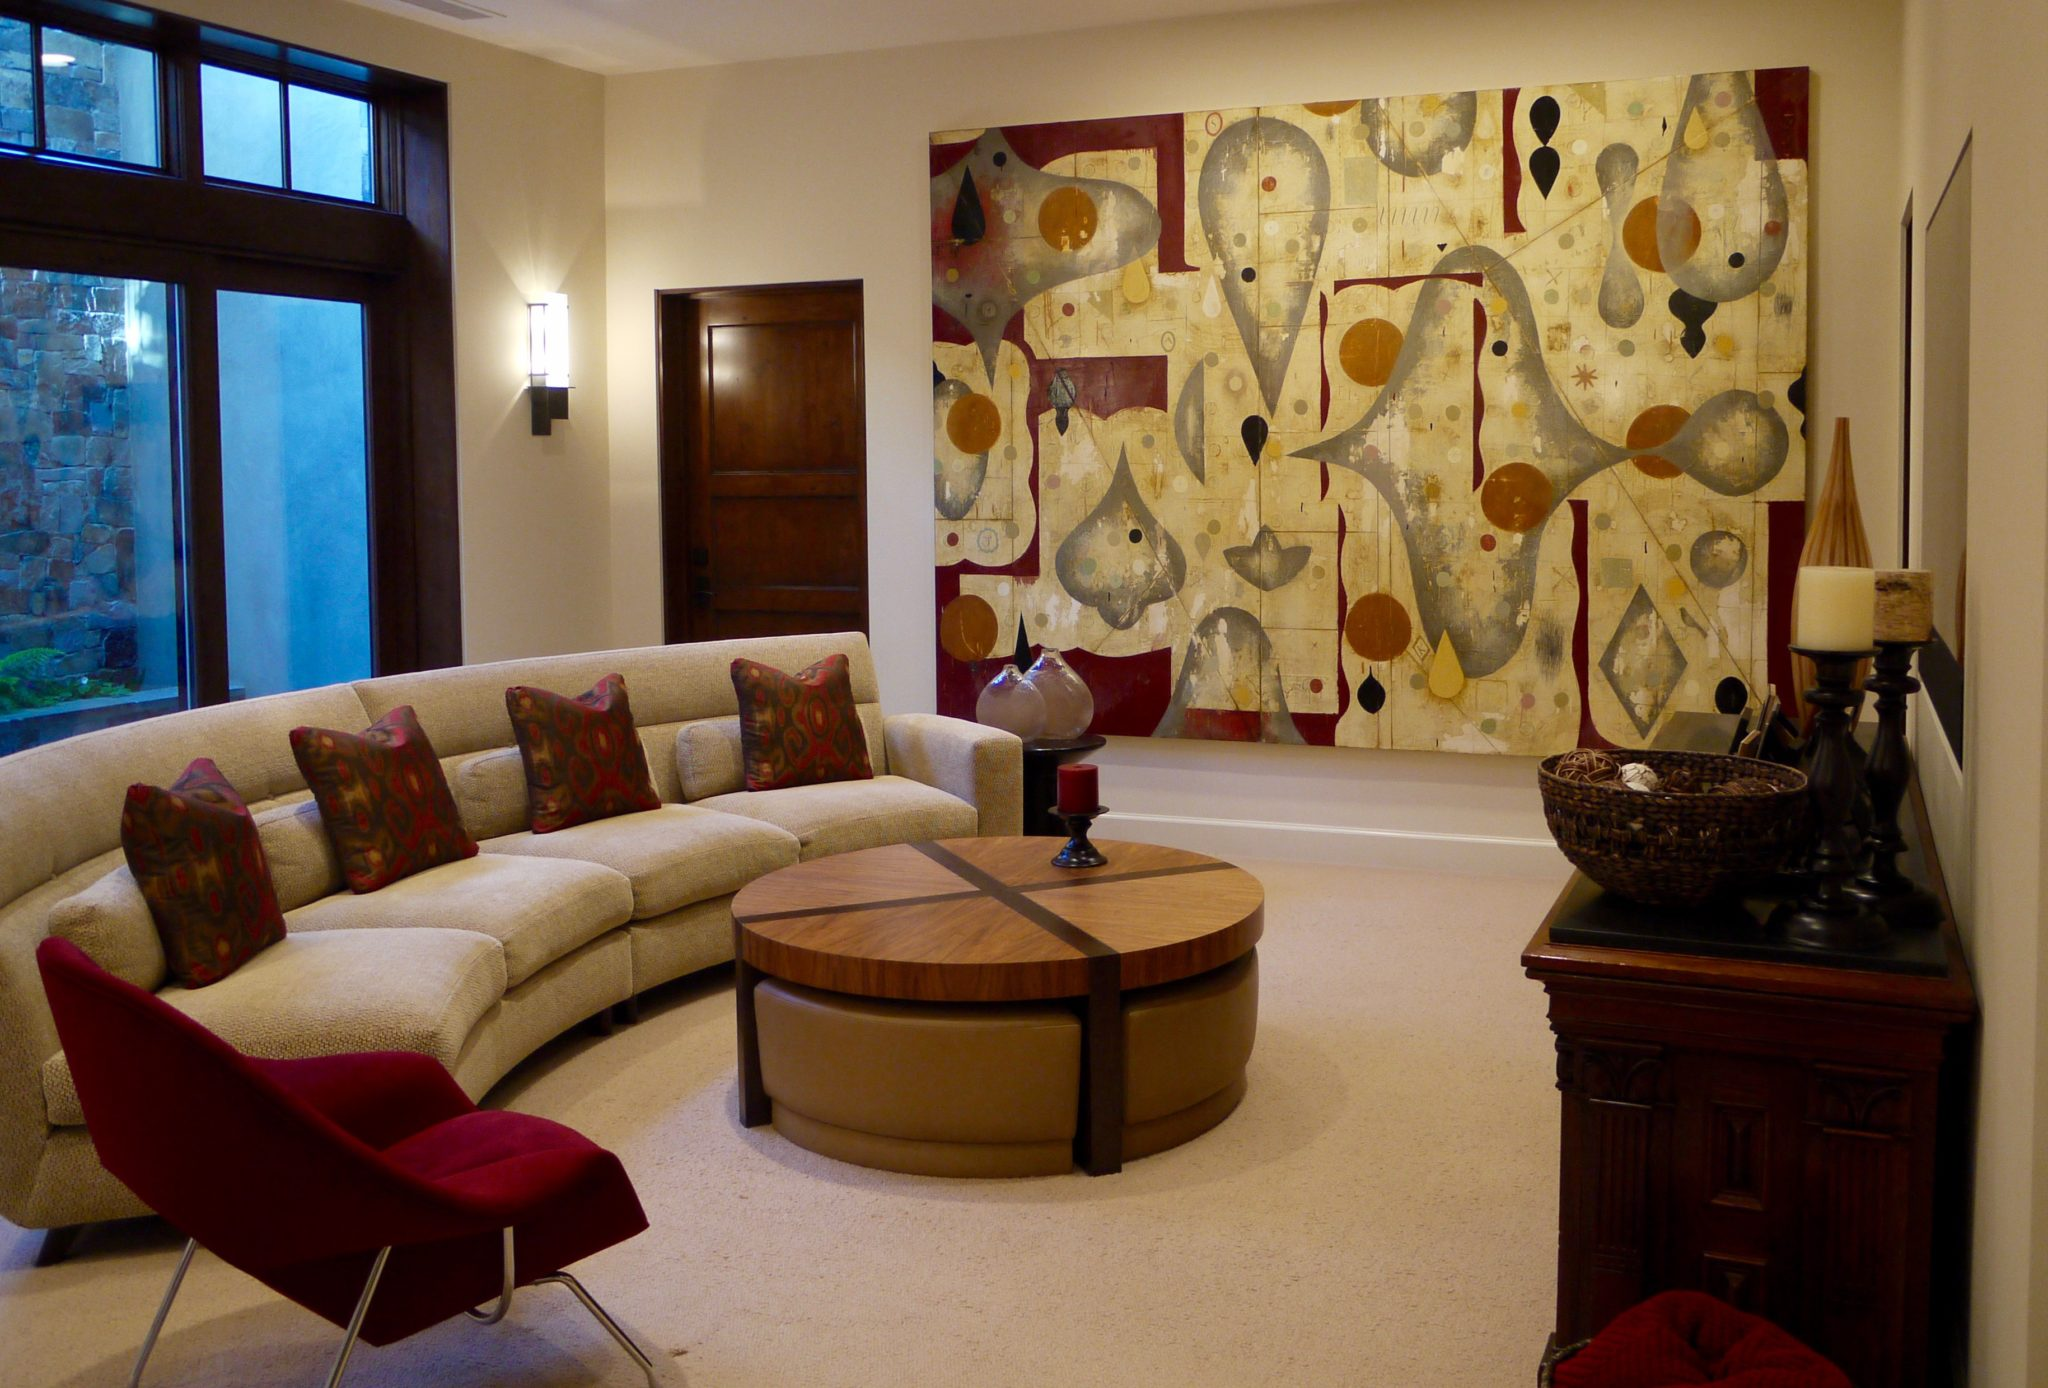 Family Room features original art, curved sofa and cocktail table with ottomans by Alison Whittaker Design